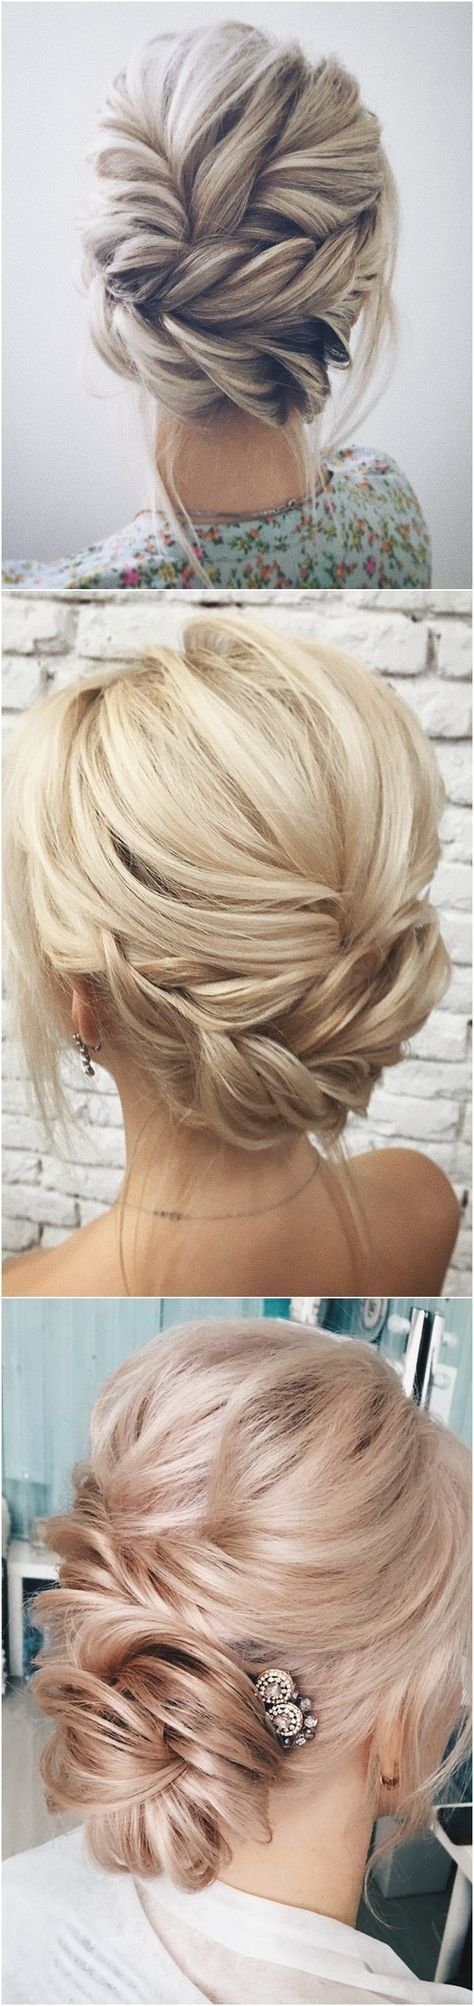 Twisted wedding updo hairstyle Hair style Pinterest Wedding